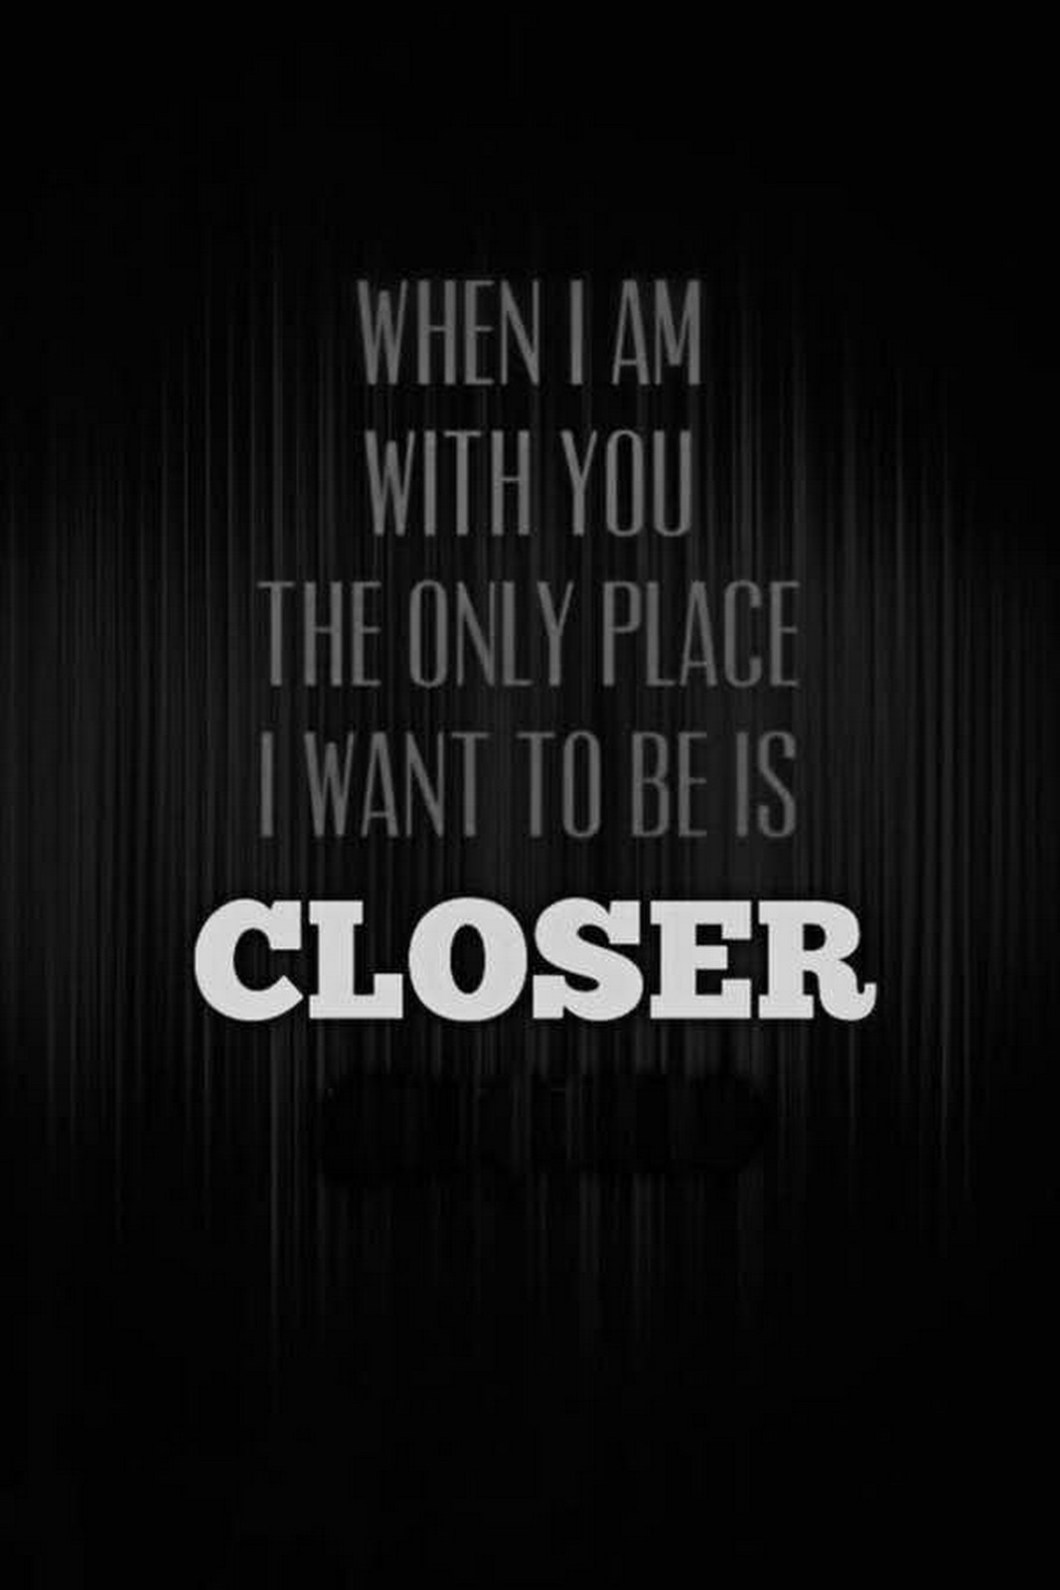 """55 Romantic Quotes - """"When I am with you, the only place I want to be is closer."""""""